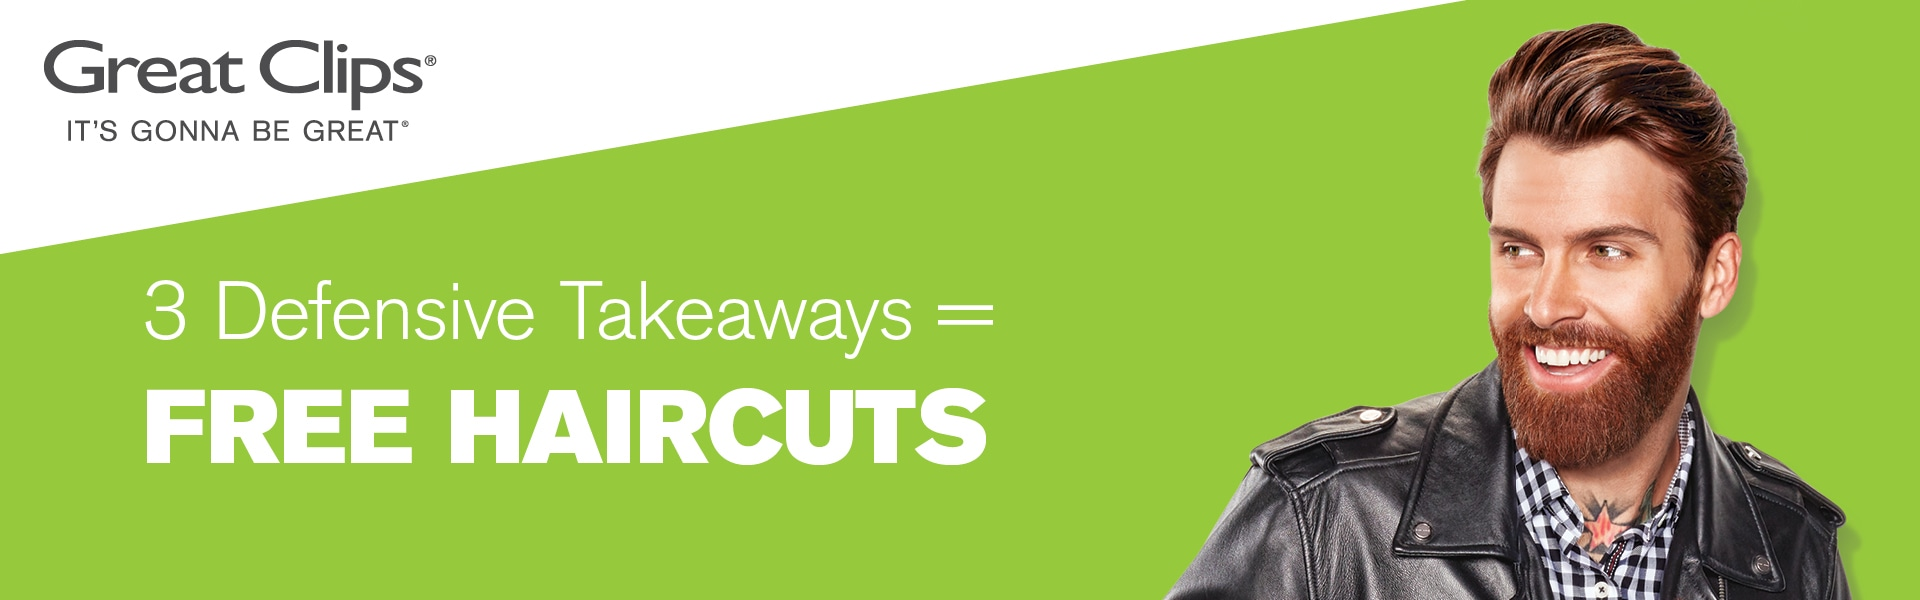 Great Clips Seattle Seahawks Seahawks